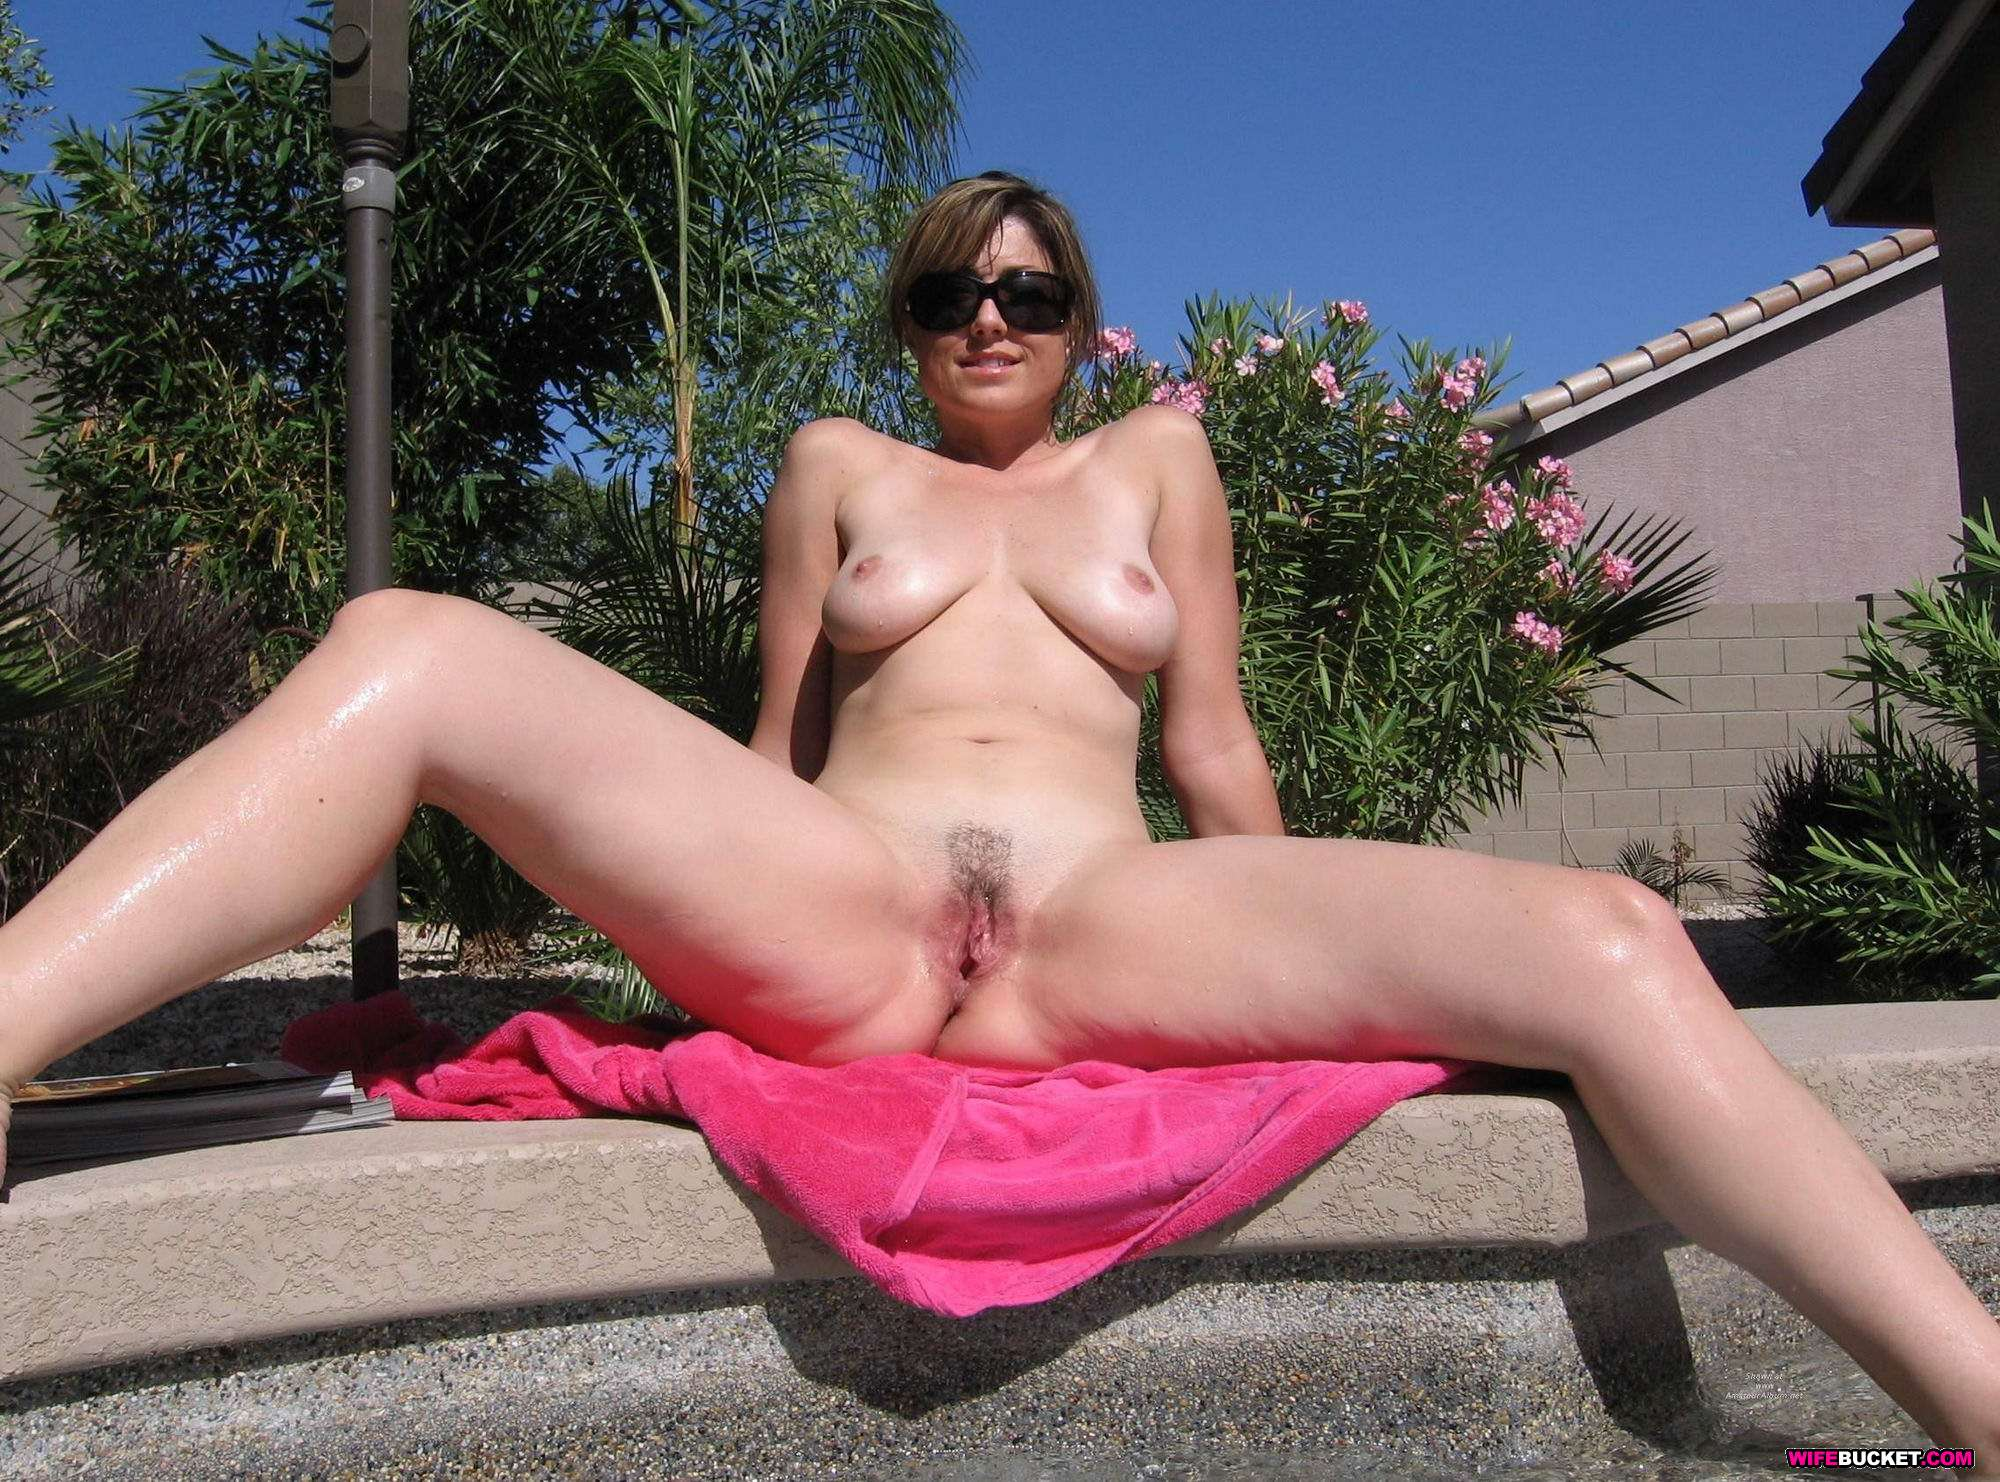 Wifebucket - Real Amateur Milfs And Wives Swingers Too-1664